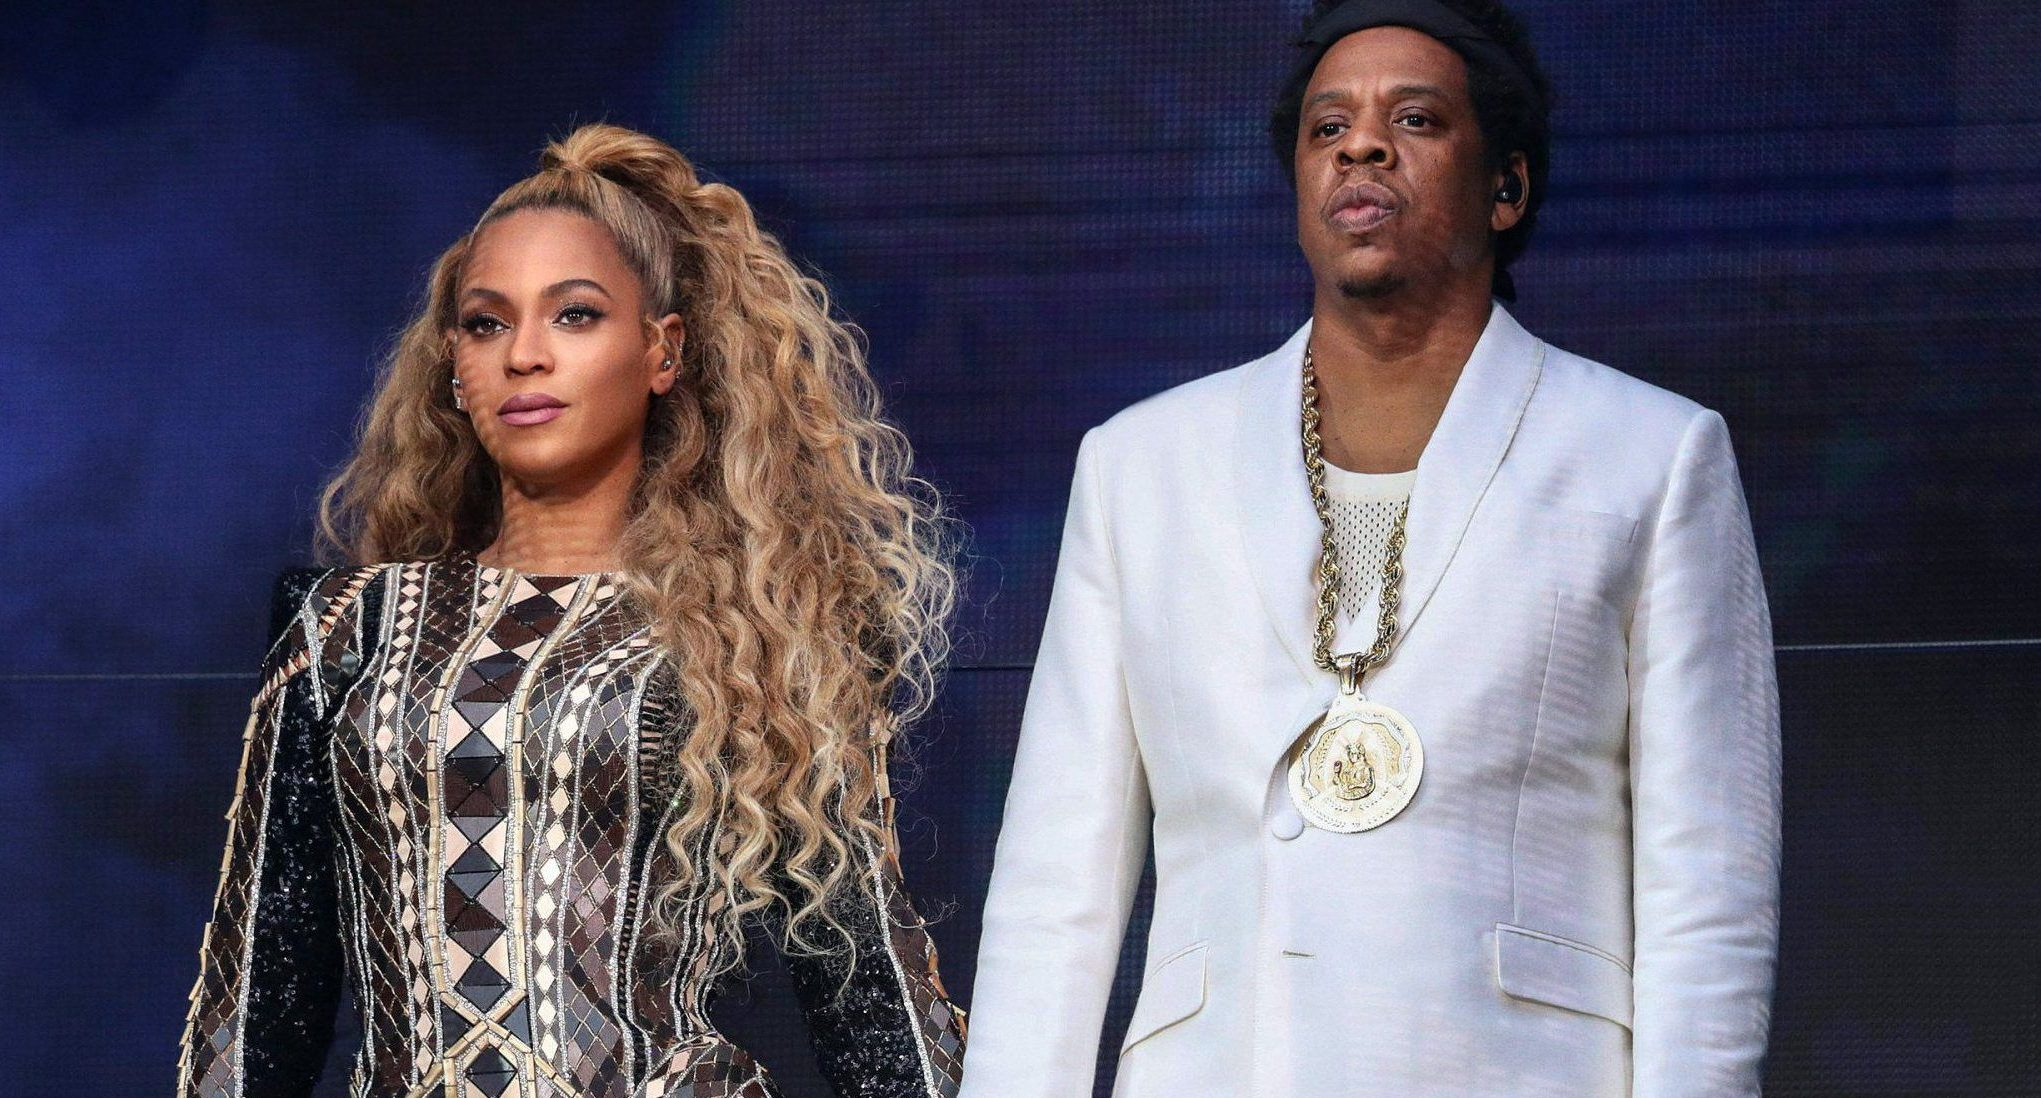 Jay-Z reveals he turned down Super Bowl half-time show as he blasts NFL in new song: 'I don't need you'